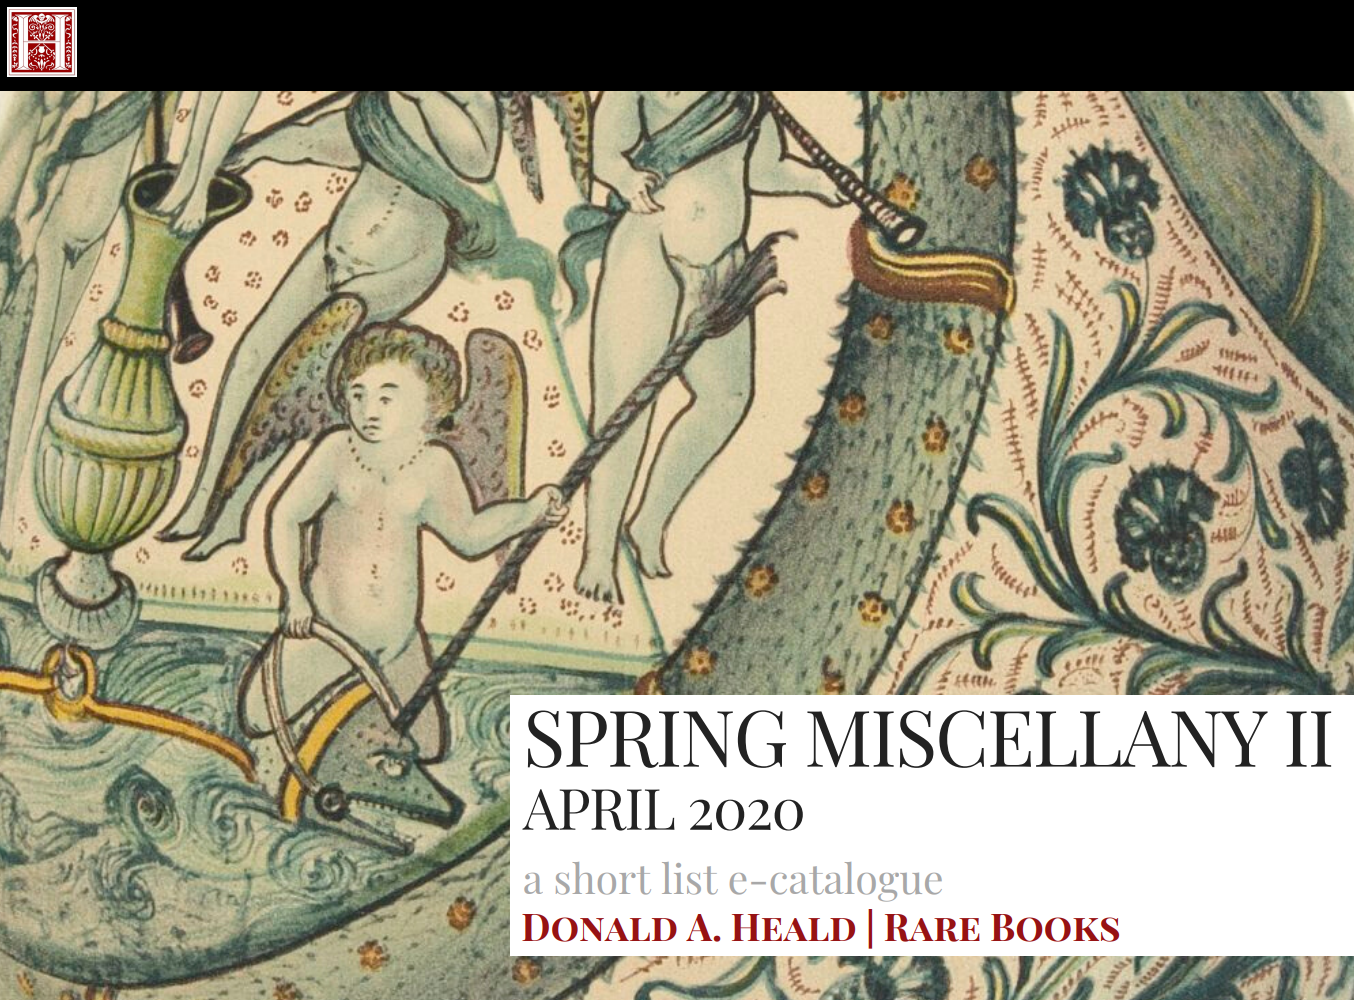 Spring Miscellany Part II - April 2020